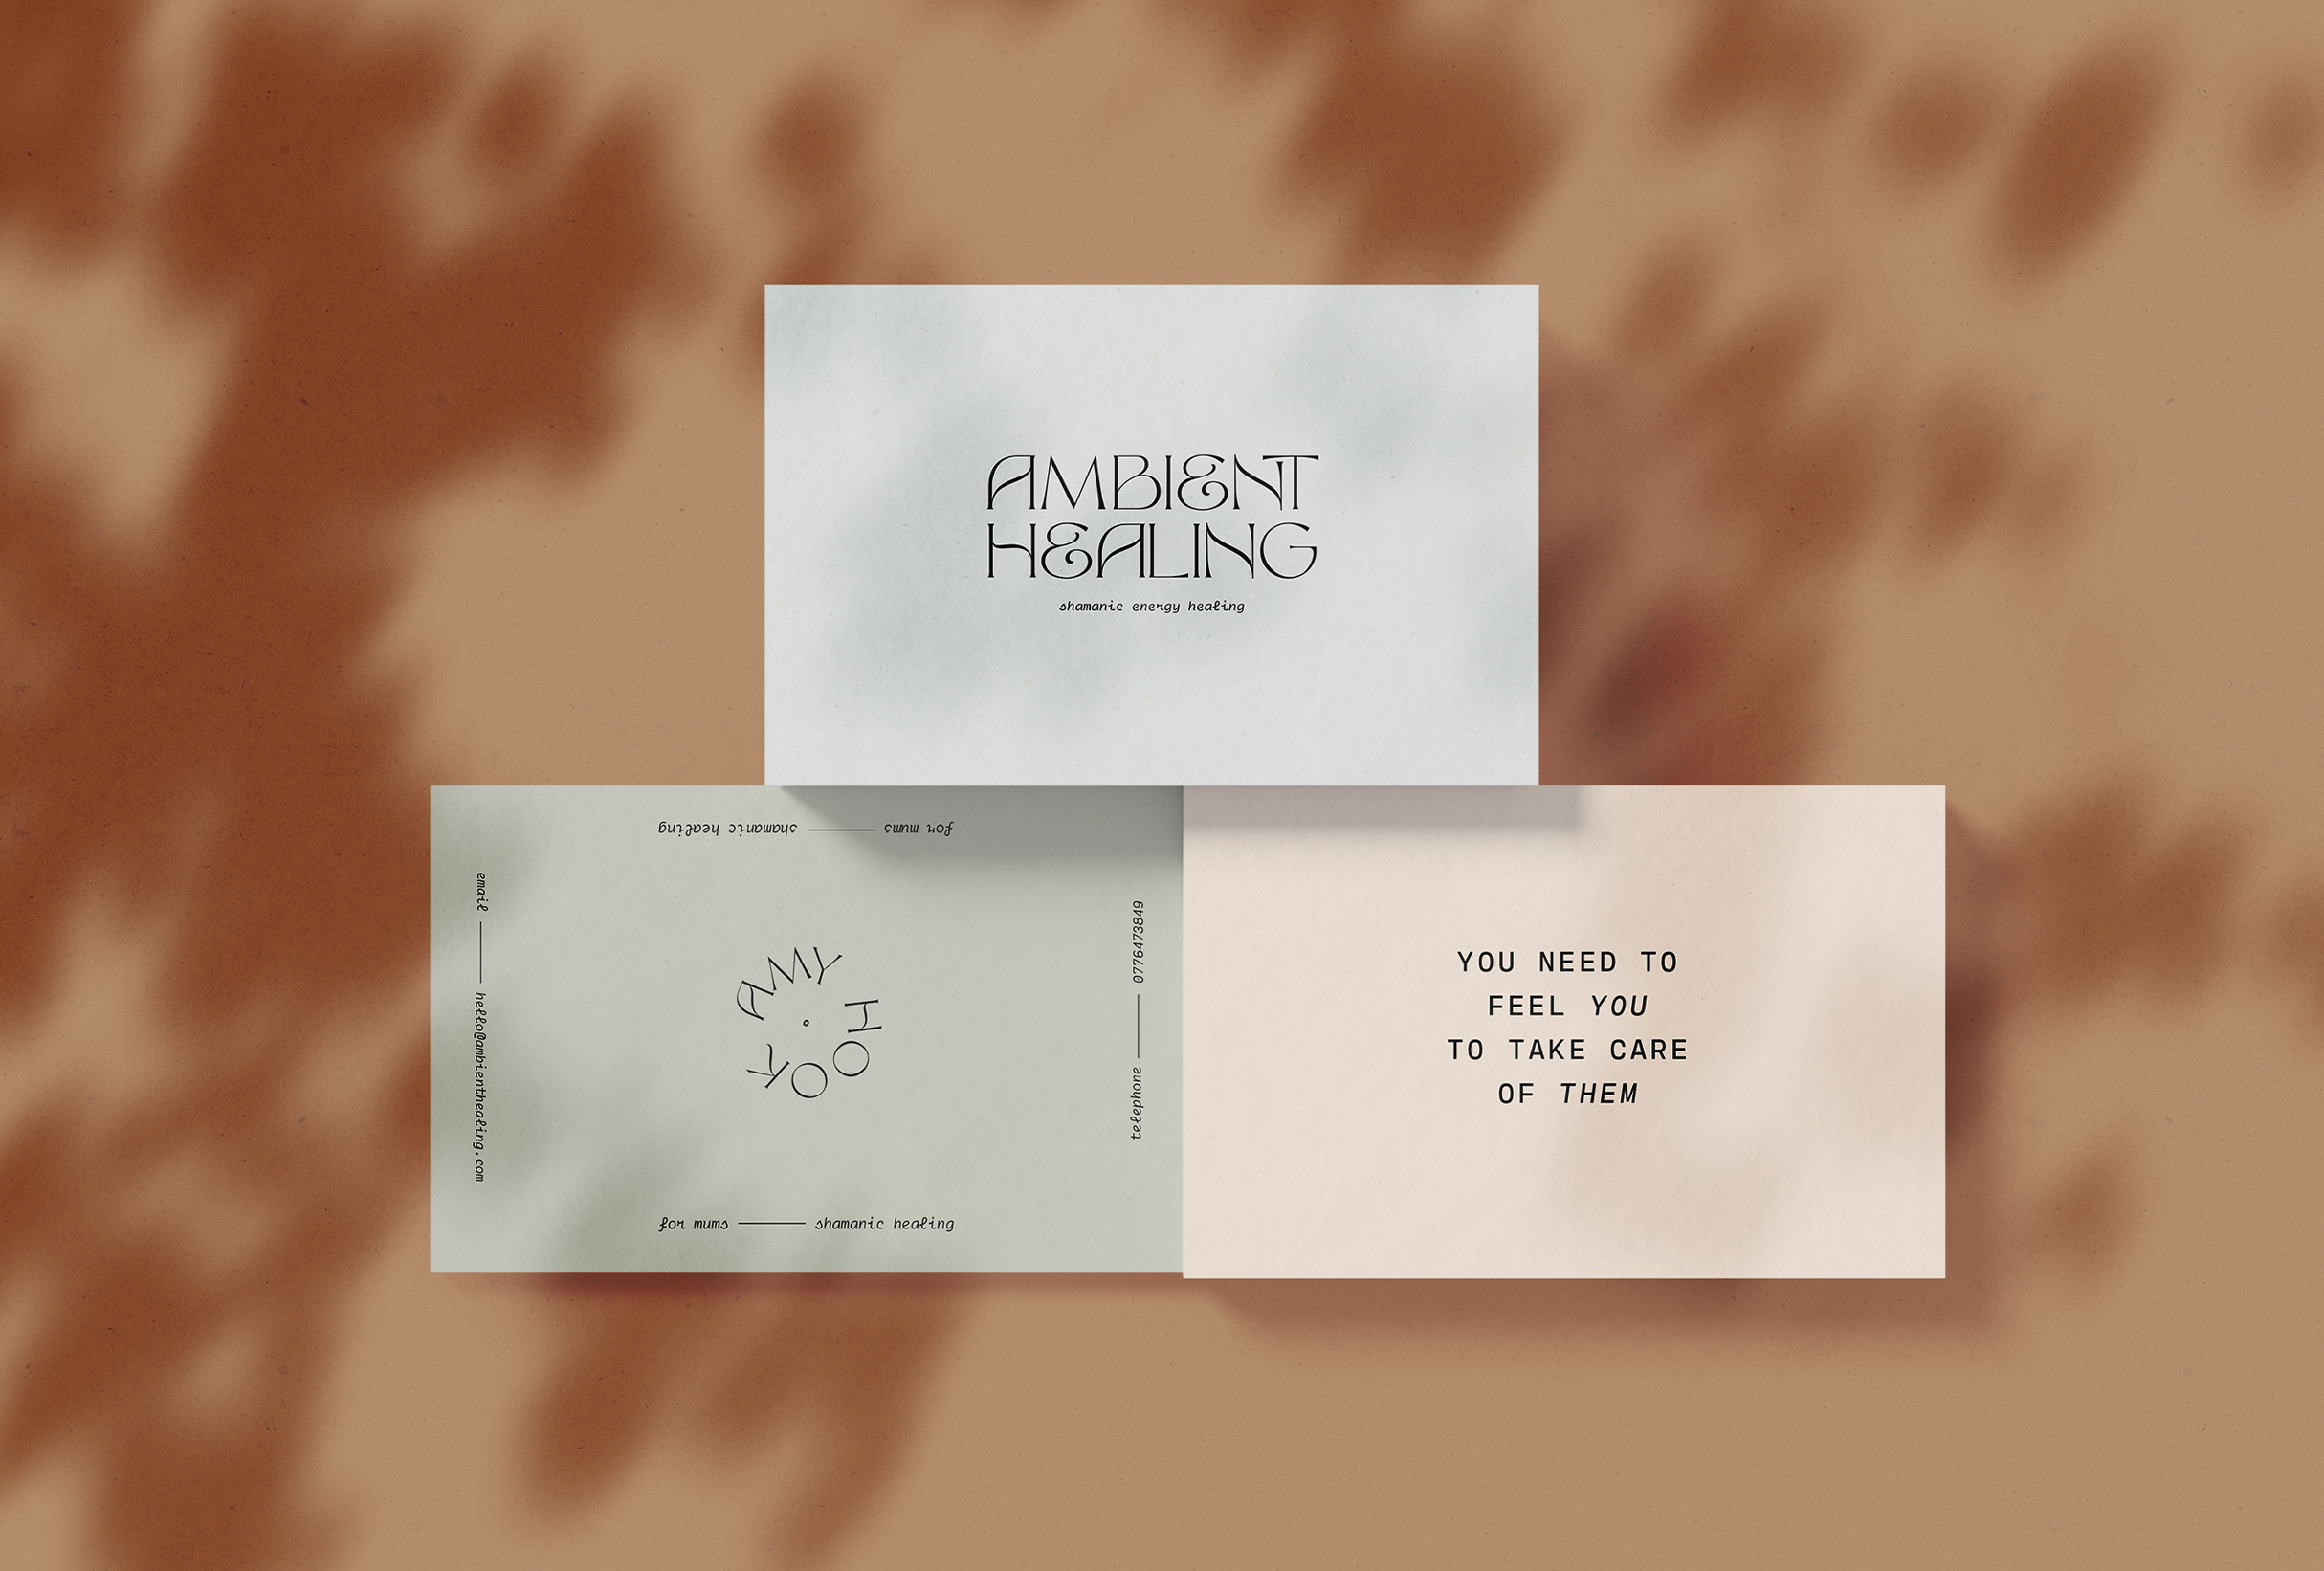 Business card concept for Ambient Healing, shamanic energy healing bringing a calm and balanced shakra to negate the stress of our daily lives and offering the tools we need to promote a positive state of mind - designed by Wiltshire-based graphic designer, Kaye Huett